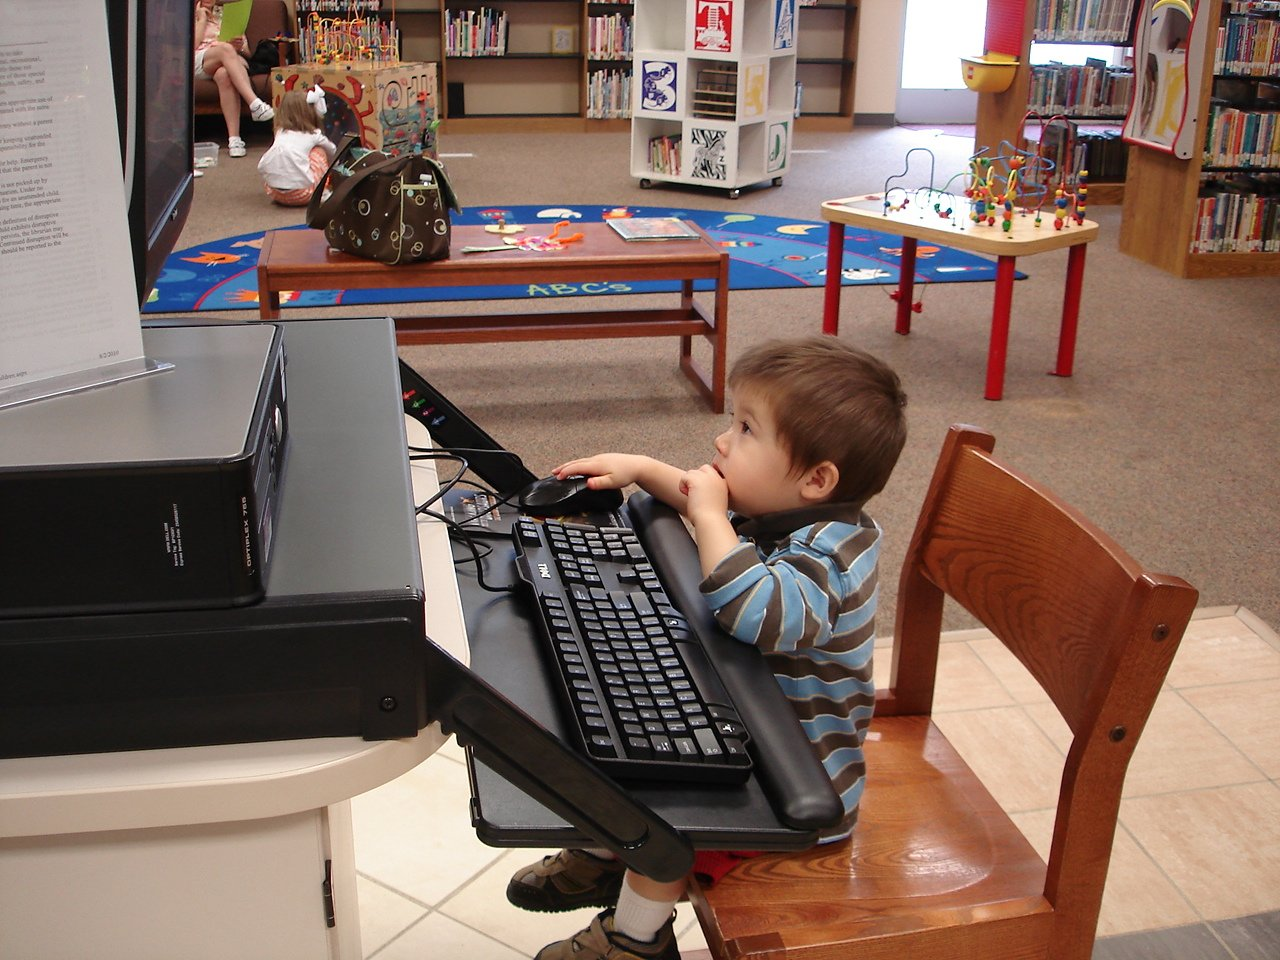 small child on library computer